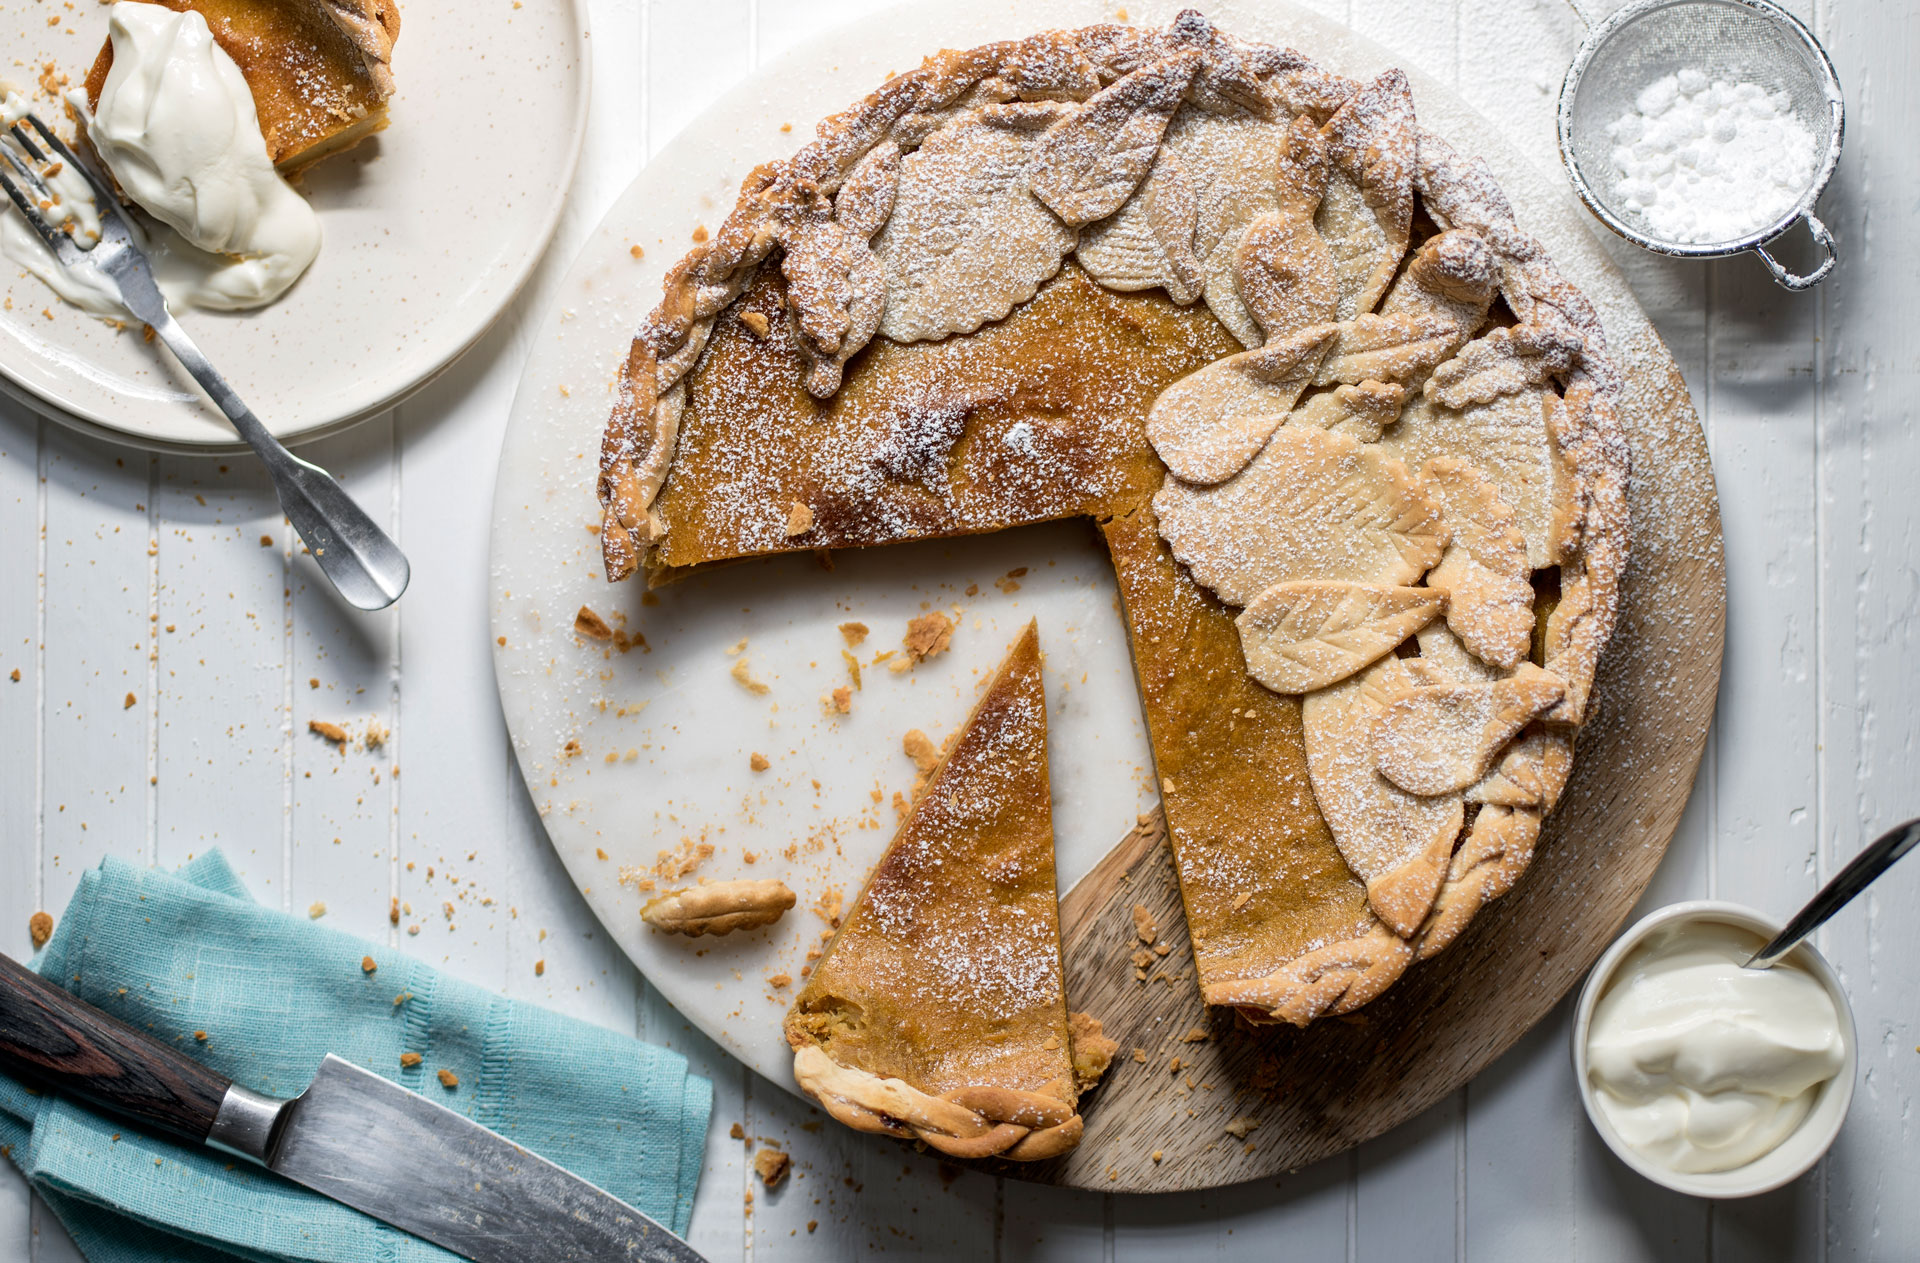 Try this sweet potato pie that's a deliciously spiced autumnal dessert